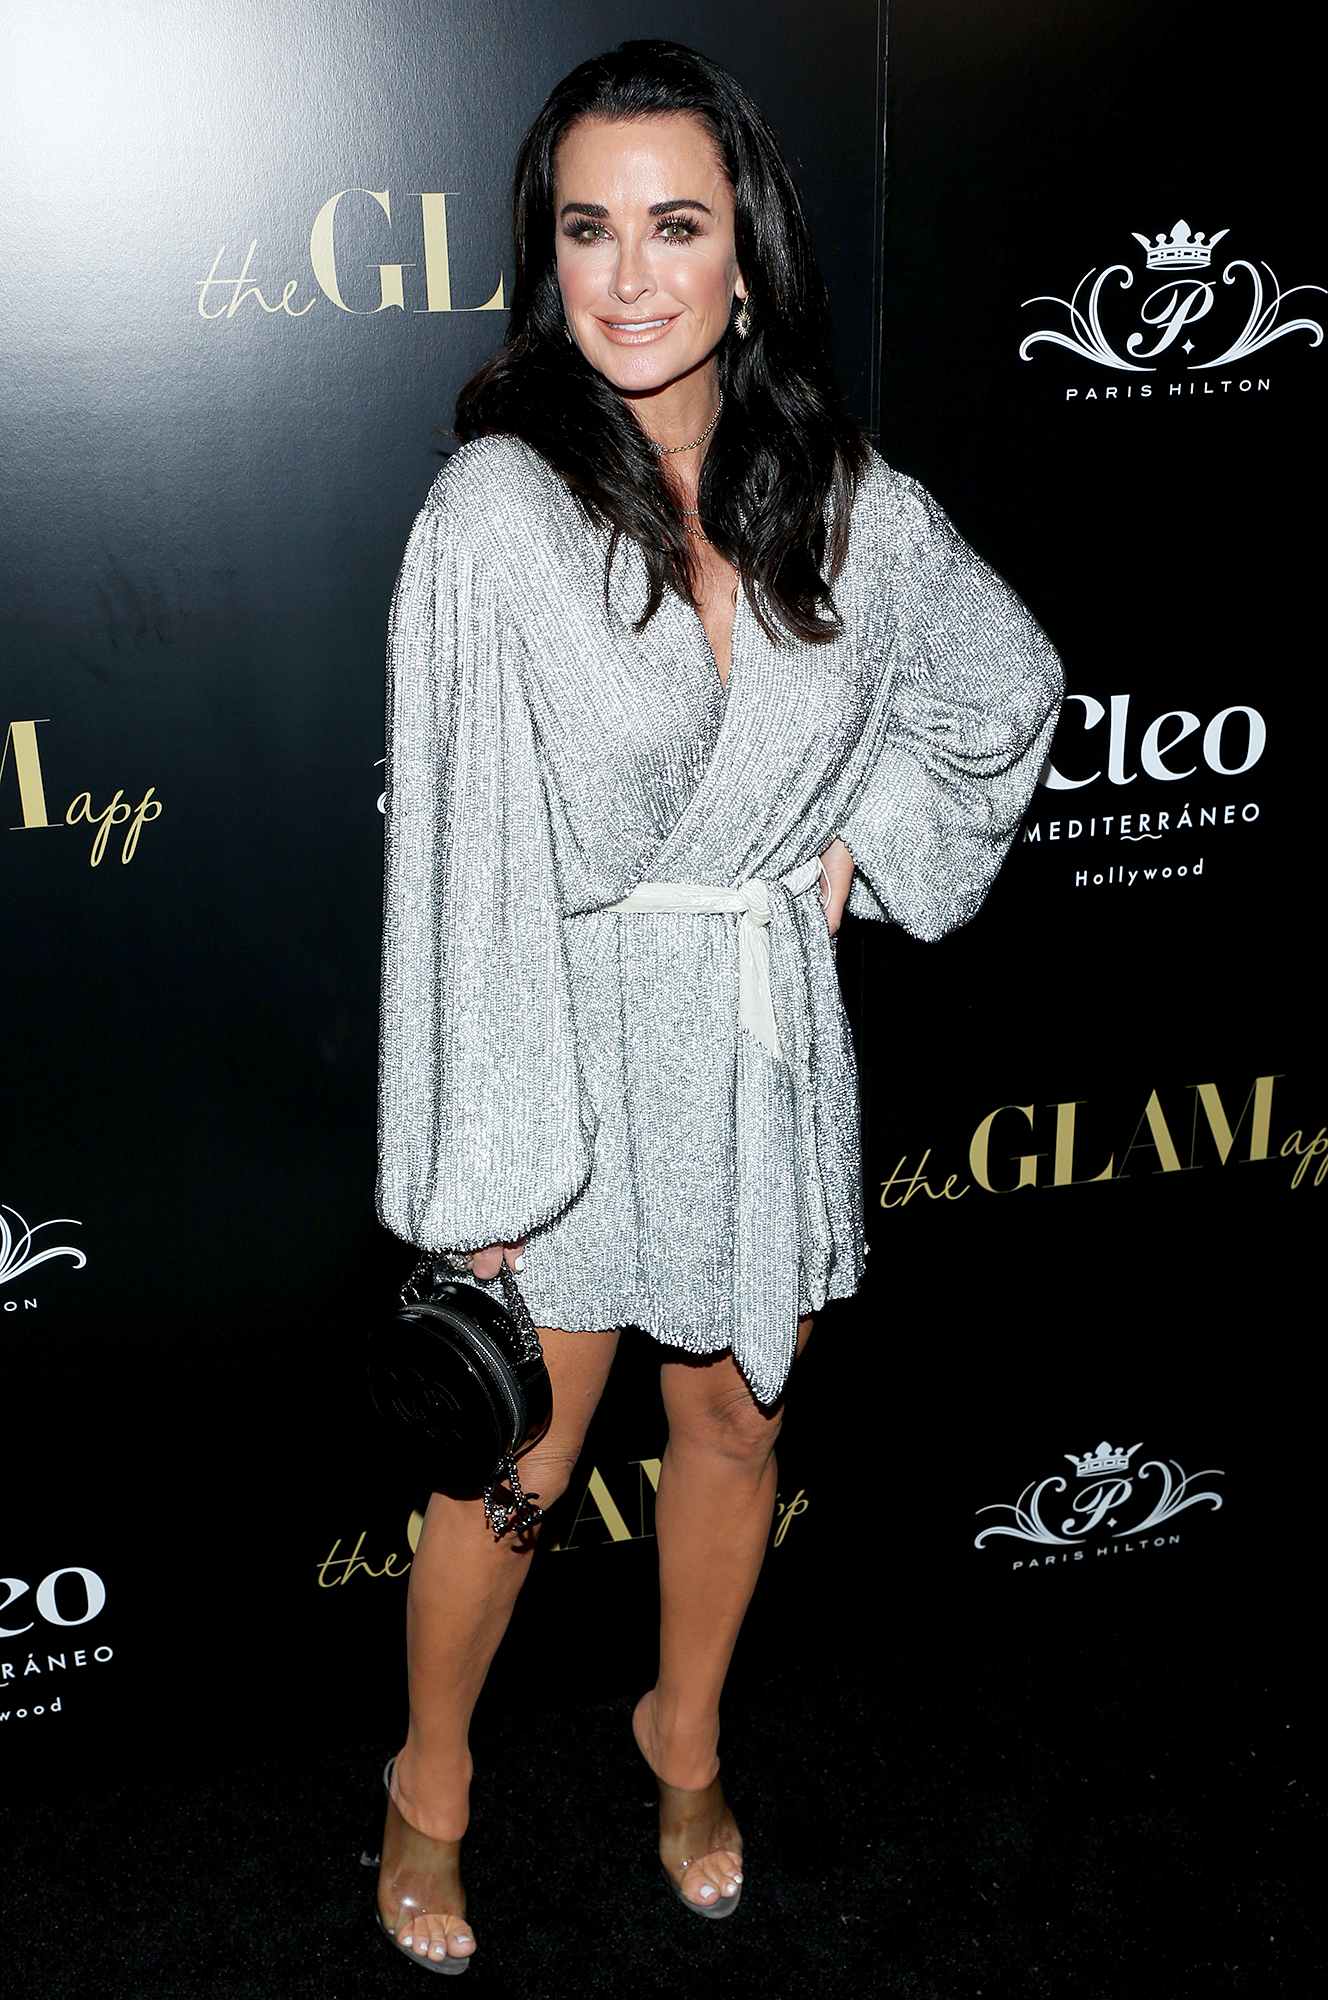 Kyle-Richards-attends-The-Glam-App-Celebration-Event-at-Cleo